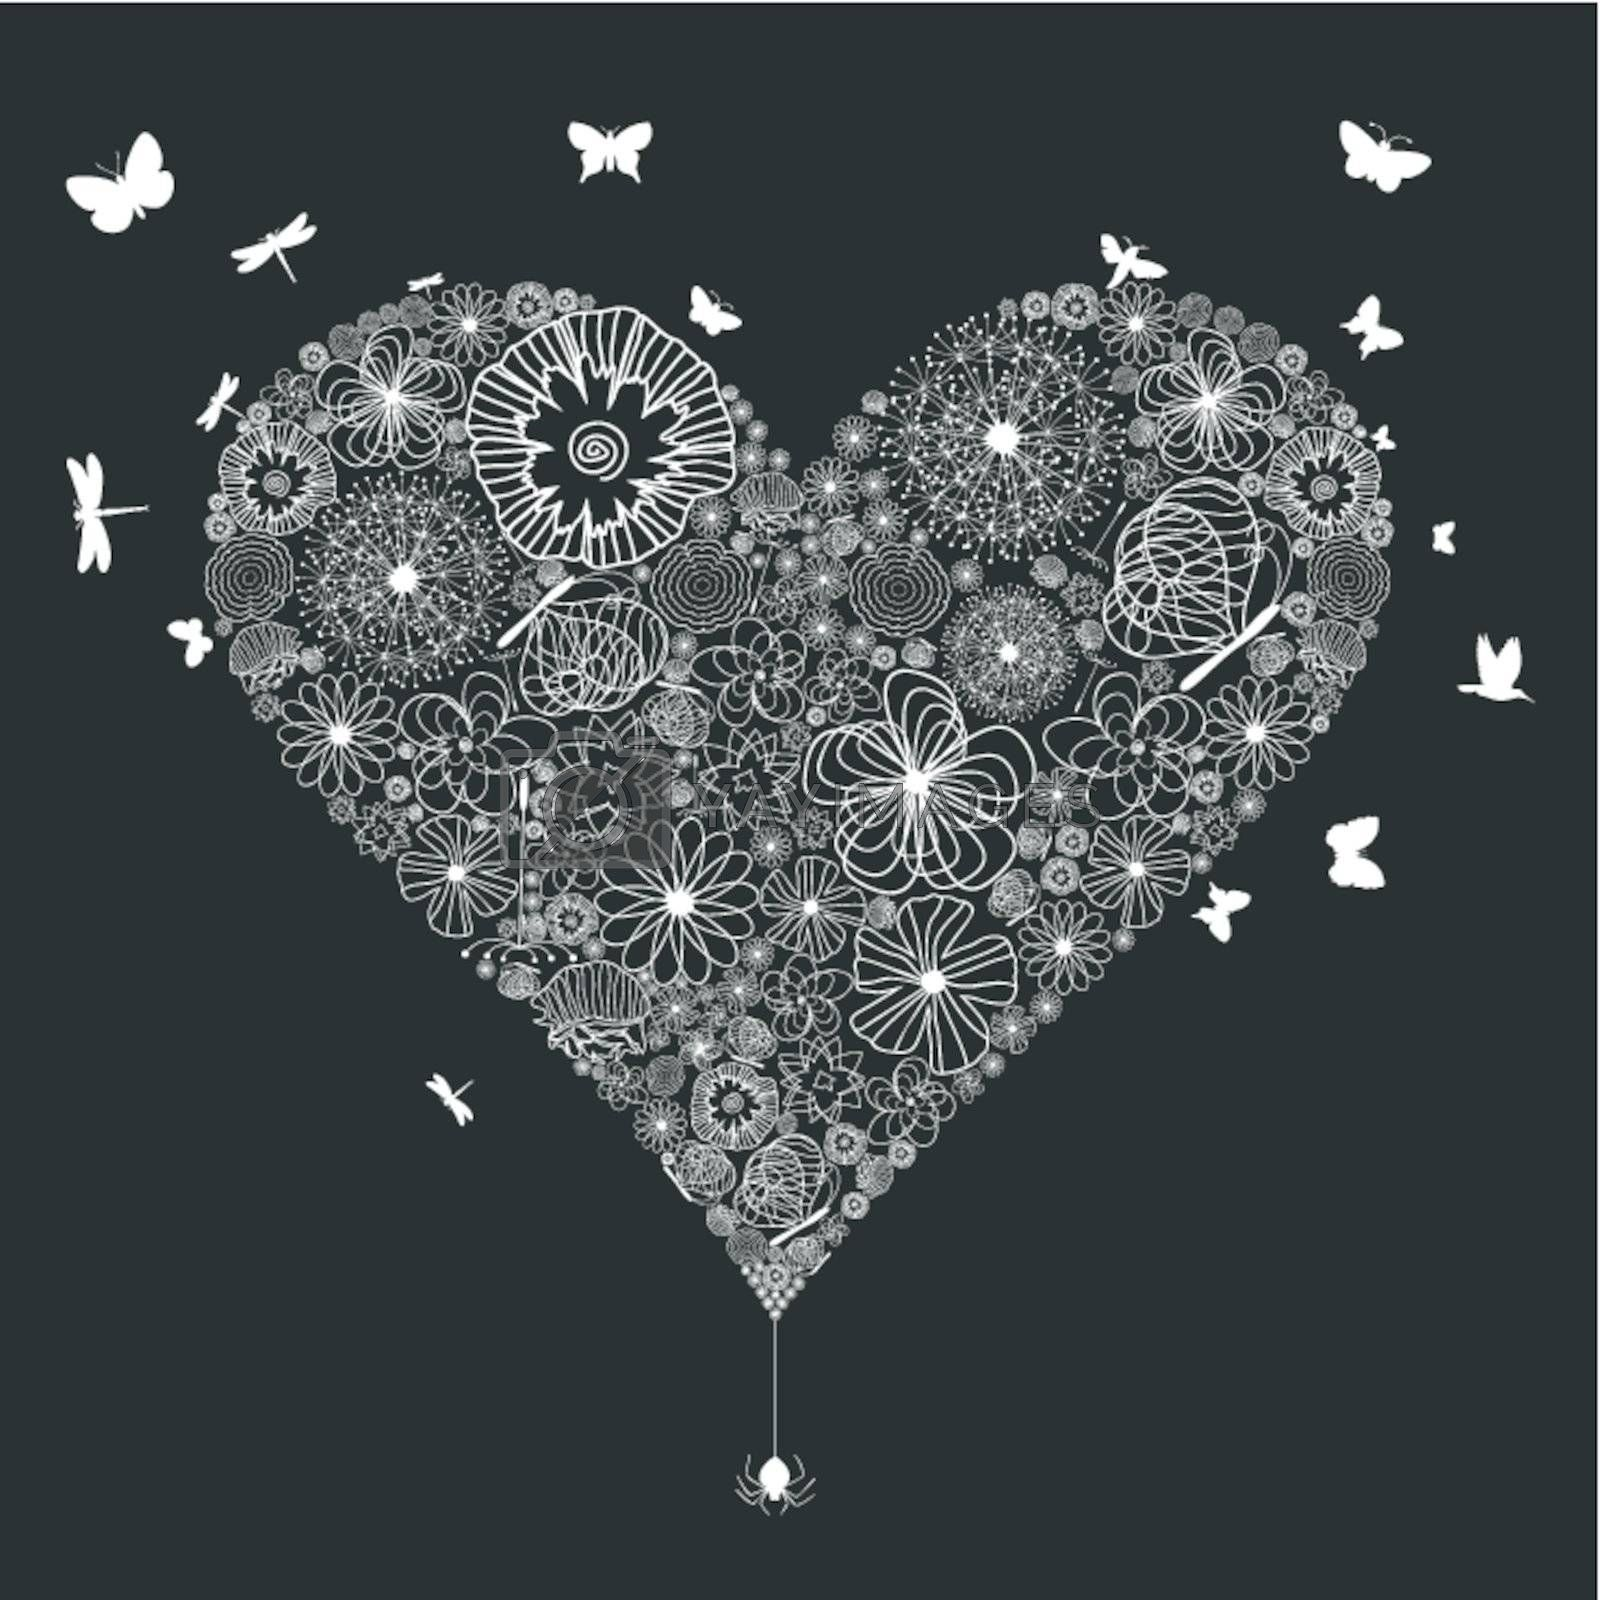 White wedding heart on a black background. A vector illustration